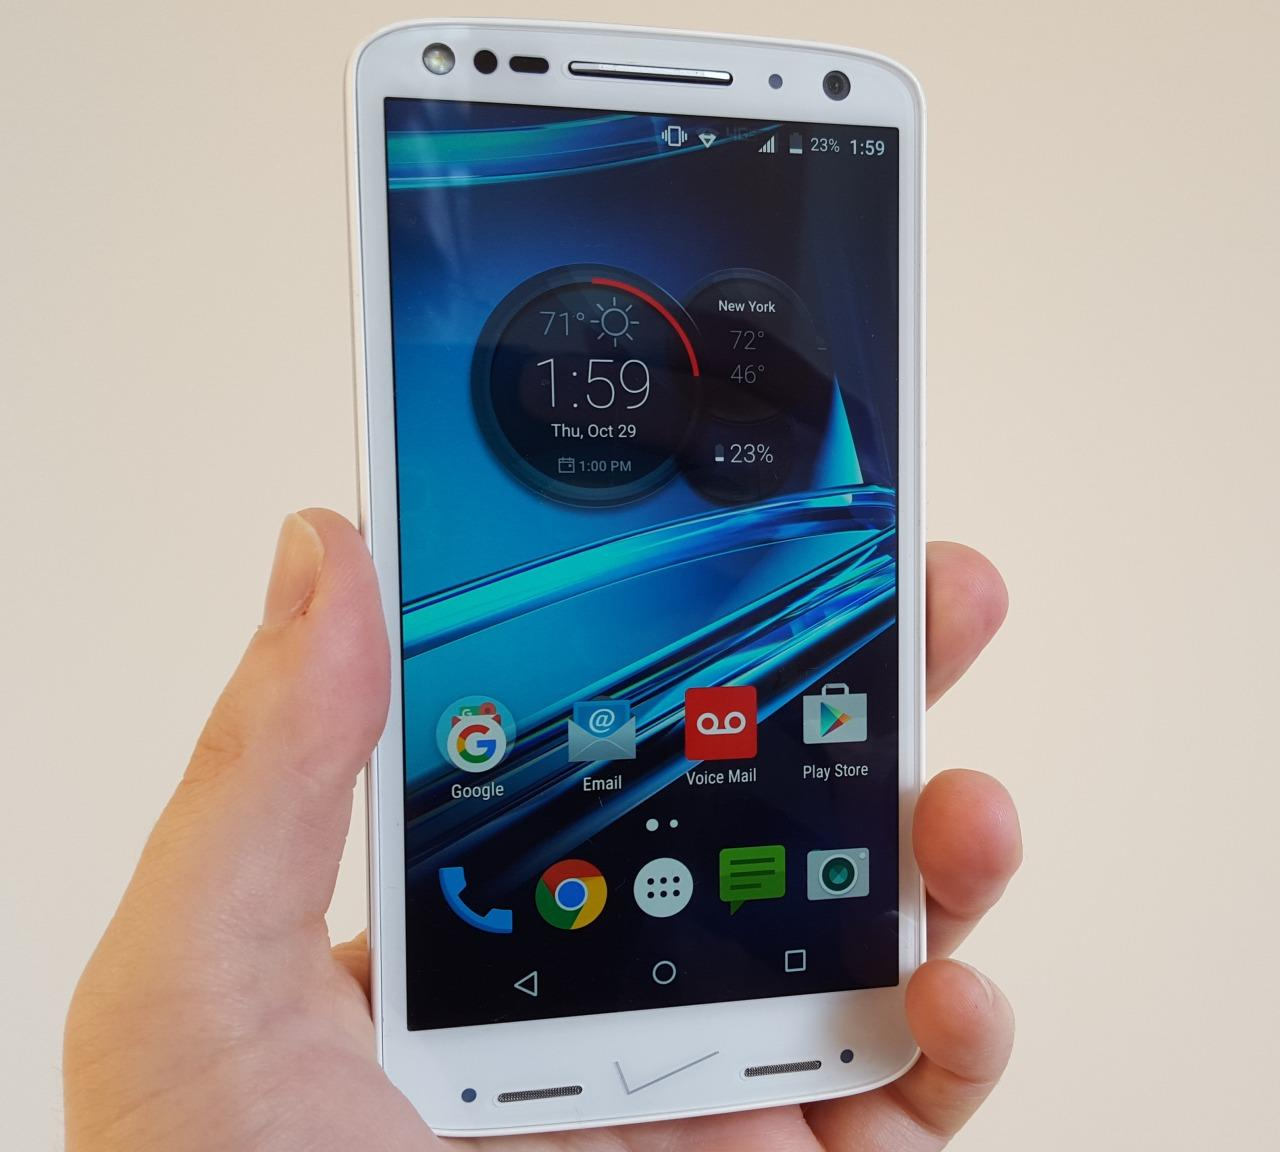 Motorola Droid Turbo 2 Review: A Shatterproof Display and All-Day Battery  Life